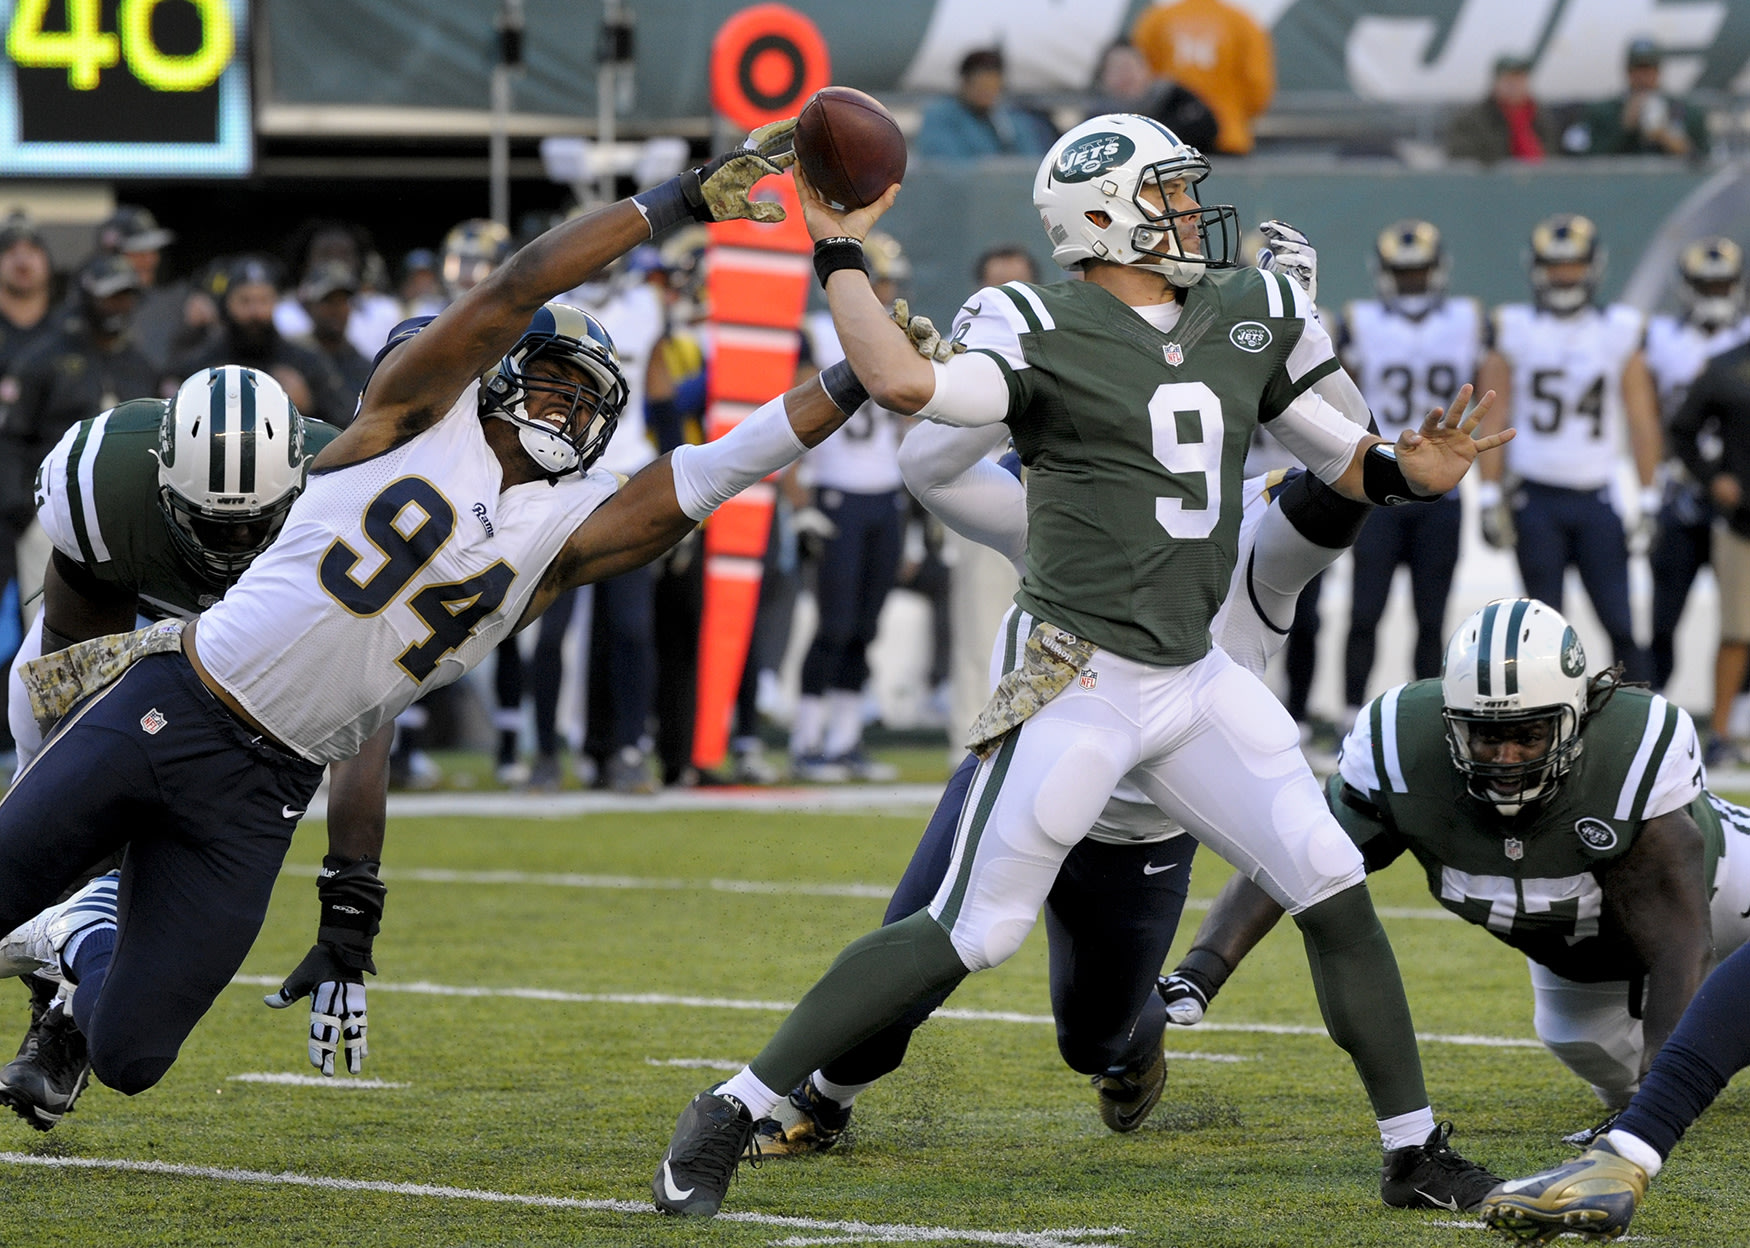 New York Jets quarterback Bryce Petty (9) throws under pressure from Los Angeles Rams defensive end Robert Quinn (94) during the third quarter of an NFL football game, Nov. 13, 2016, in East Rutherford, N.J. (Photo: Bill Kostroun/AP)